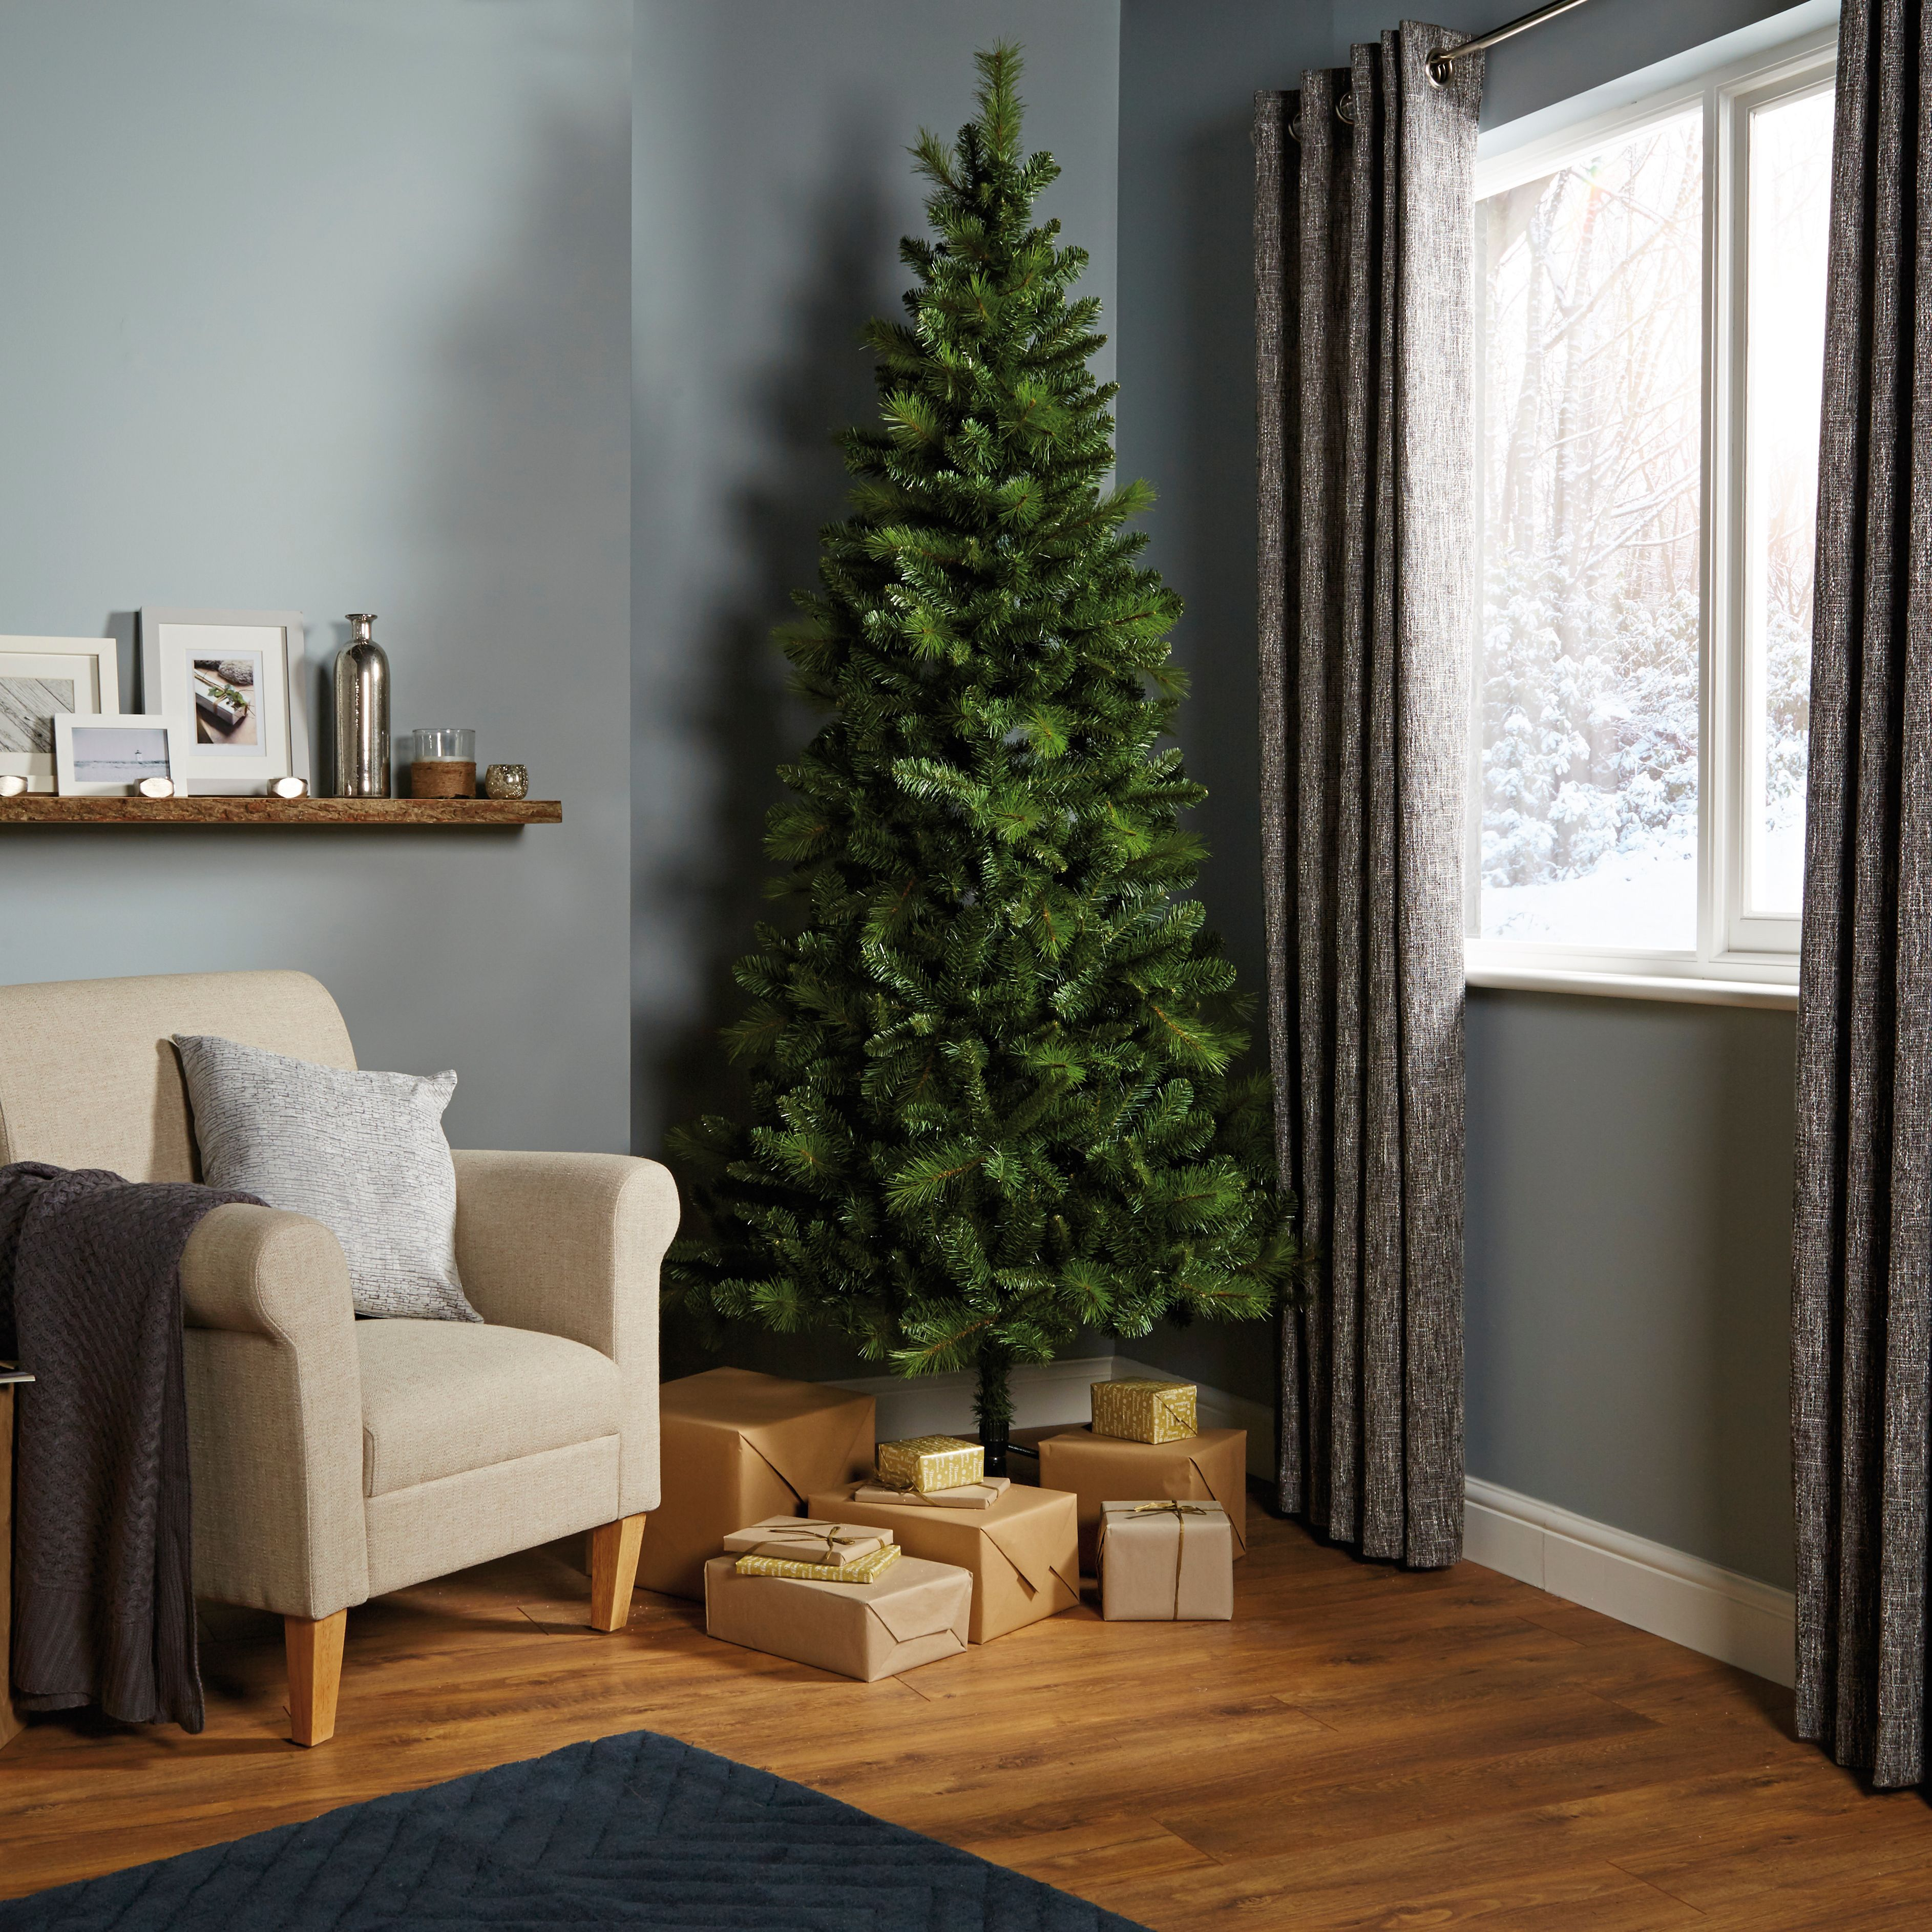 & 7ft 6In Eiger Classic Christmas Tree | Departments | DIY at Bu0026Q